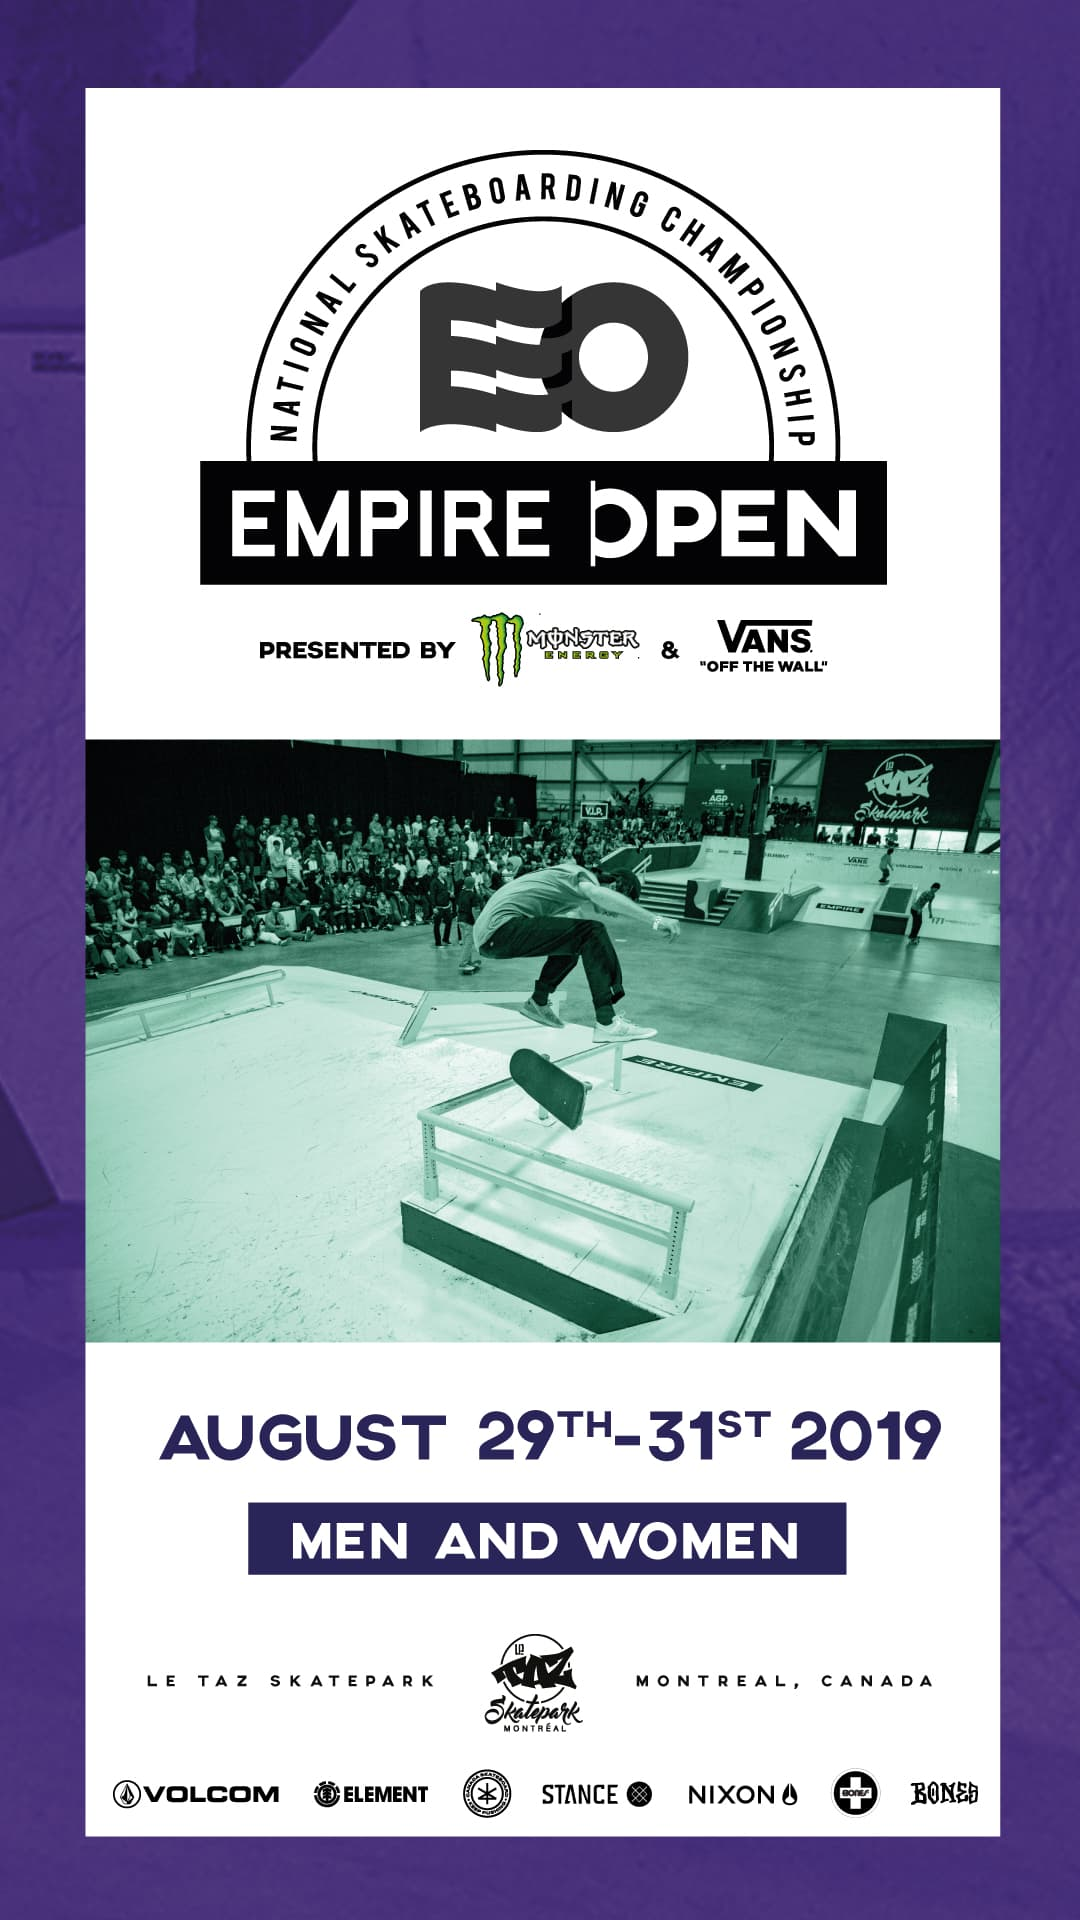 Empire Open 2019